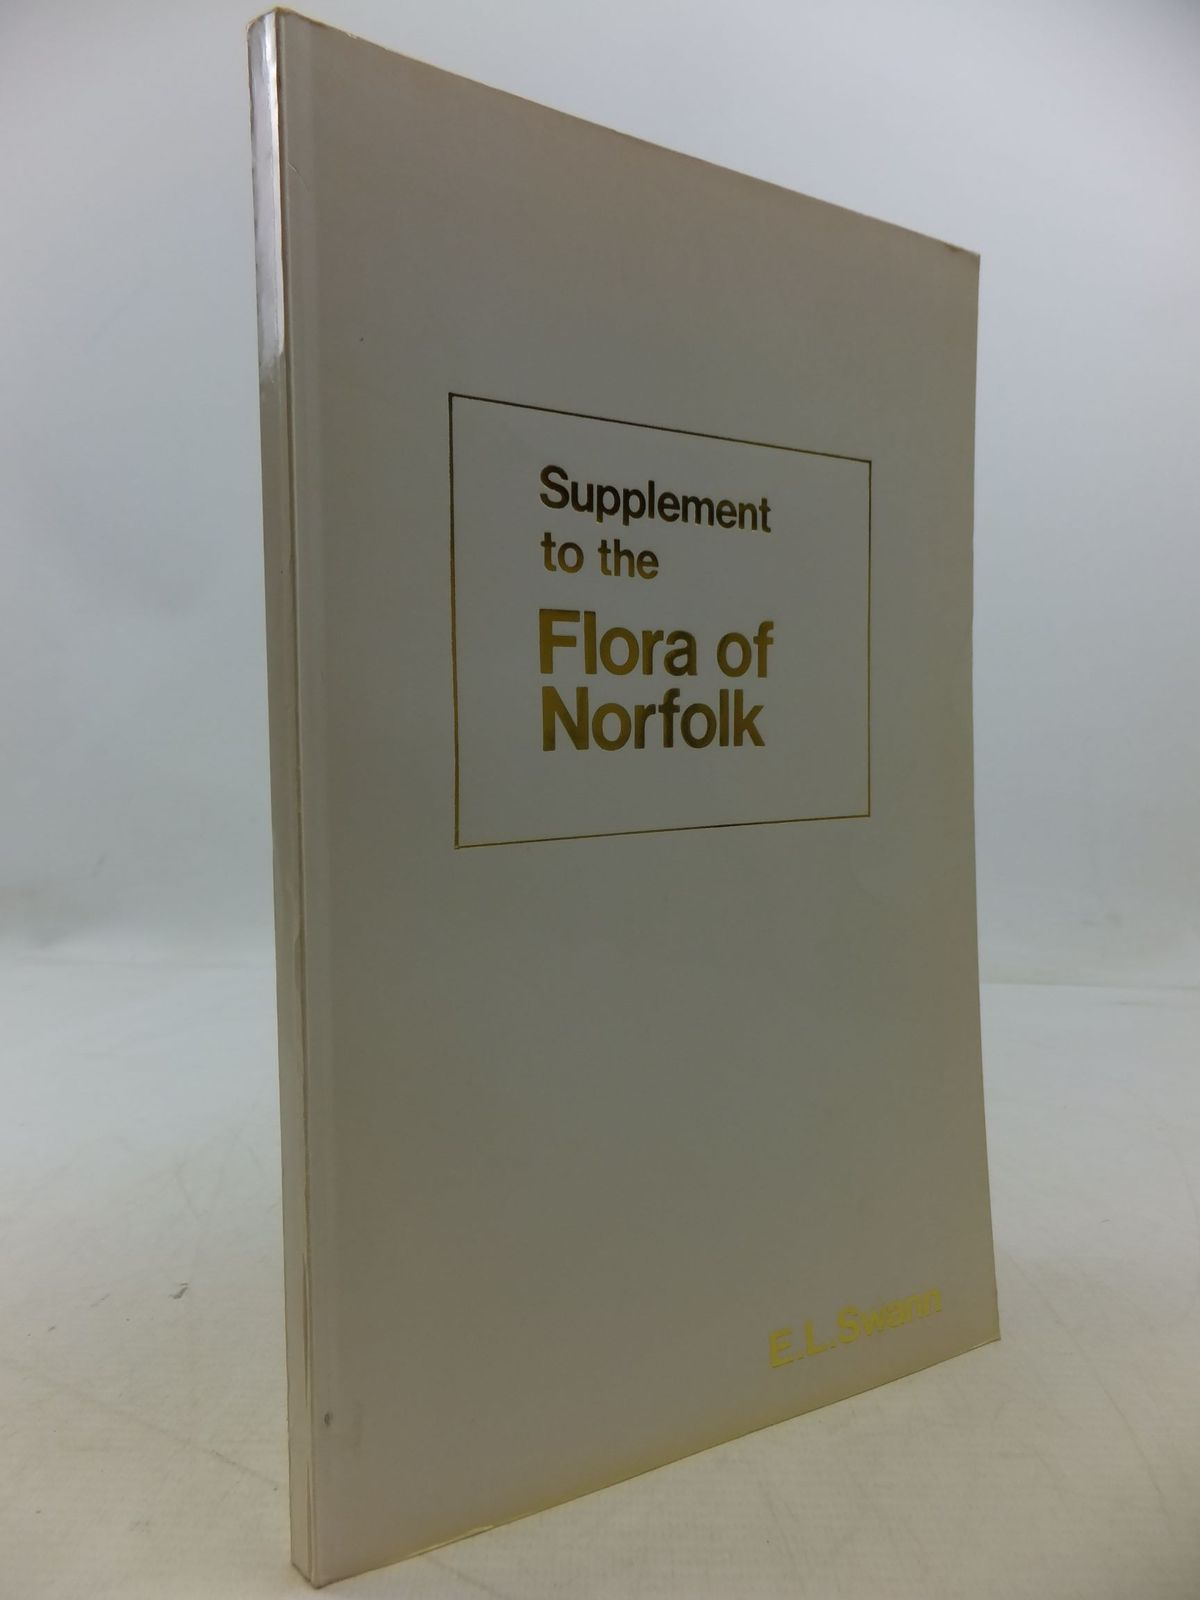 Photo of SUPPLEMENT TO THE FLORA OF NORFOLK written by Swann, E.L. published by F. Crowe & Sons Limited (STOCK CODE: 2112329)  for sale by Stella & Rose's Books